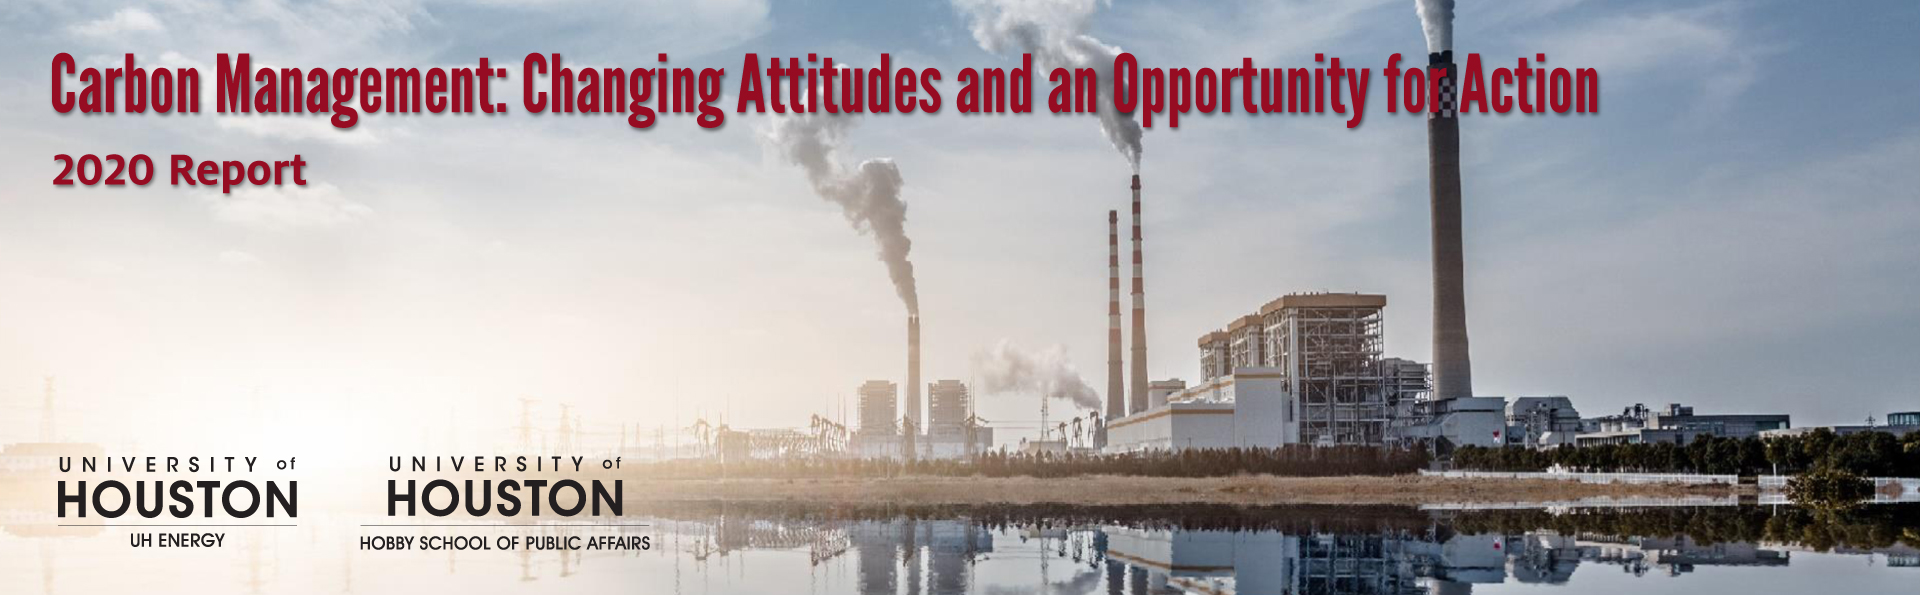 Carbon Management: Changing Attitudes and an Opportunity for Action Banner